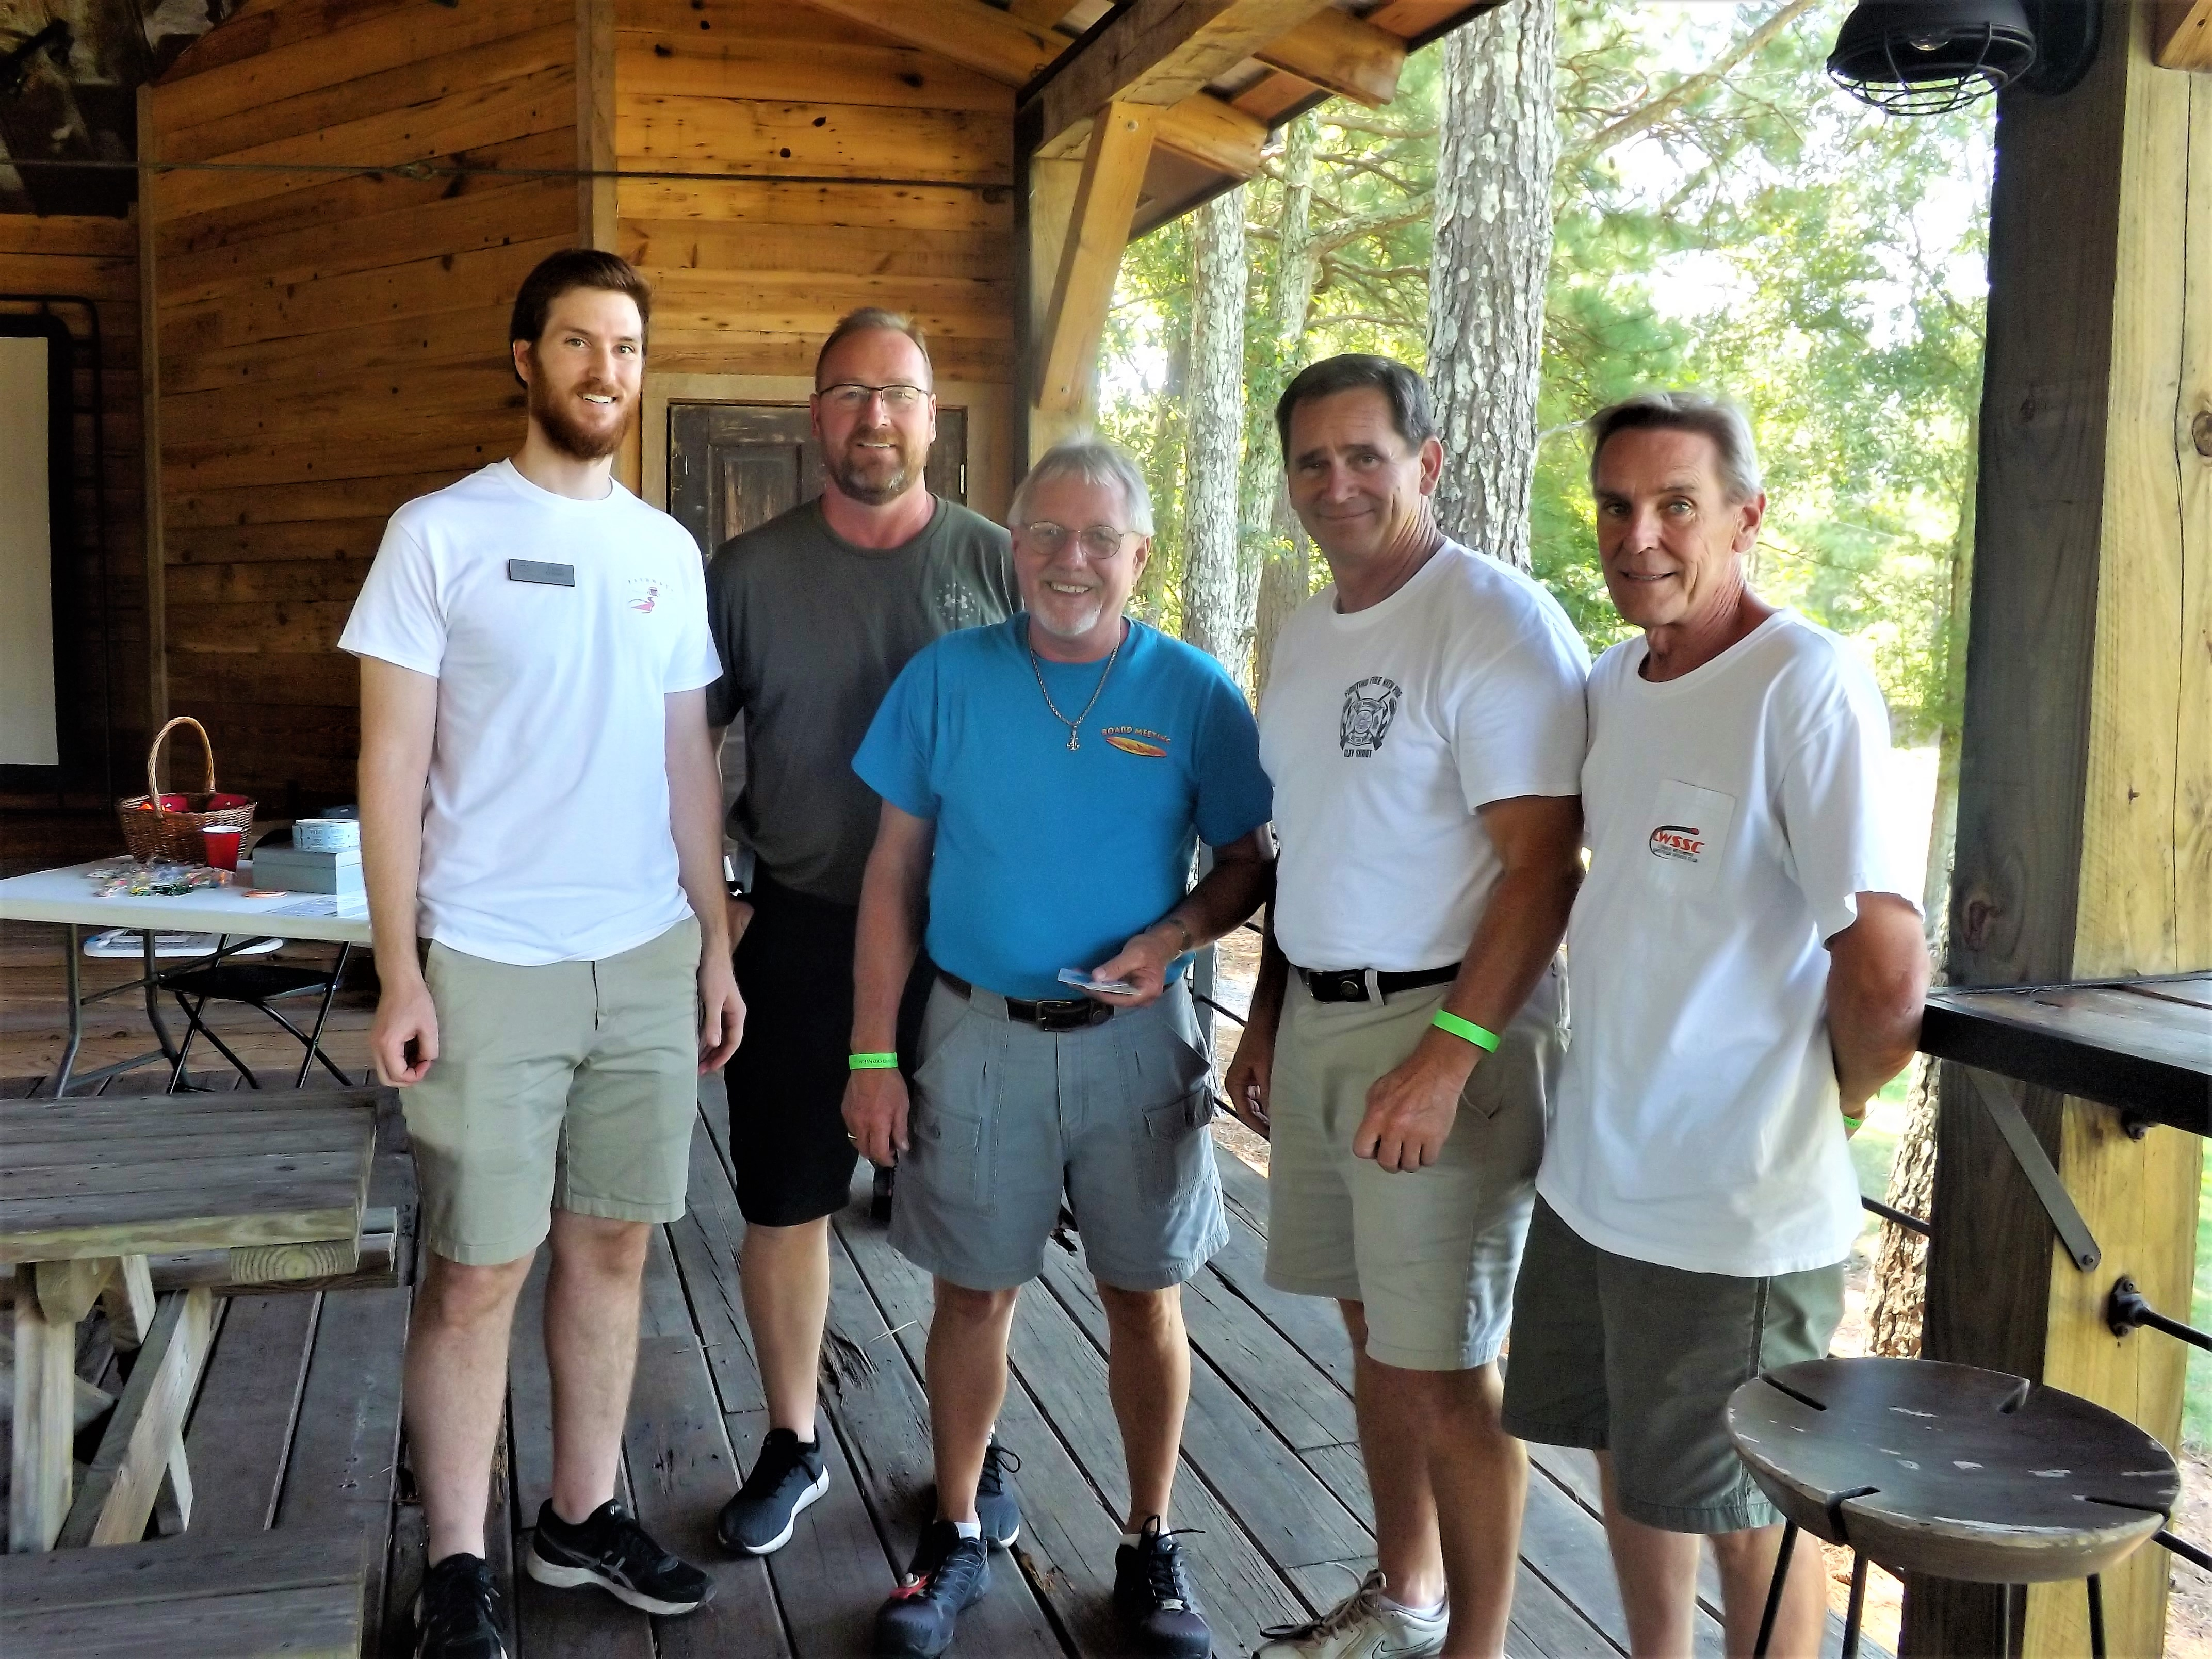 Pathways' Annual Sporting Clays Event Raises over $16K